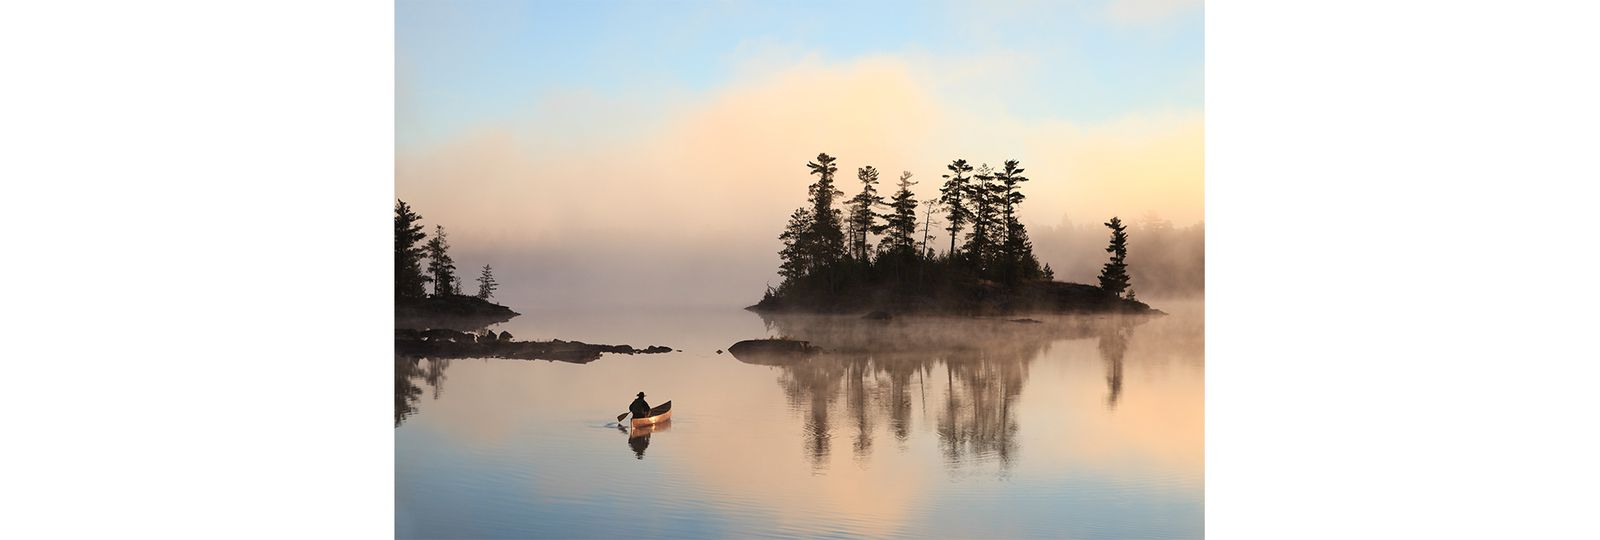 Let These Photos Take You on a Peaceful Paddle in Minnesota's Boundary Waters